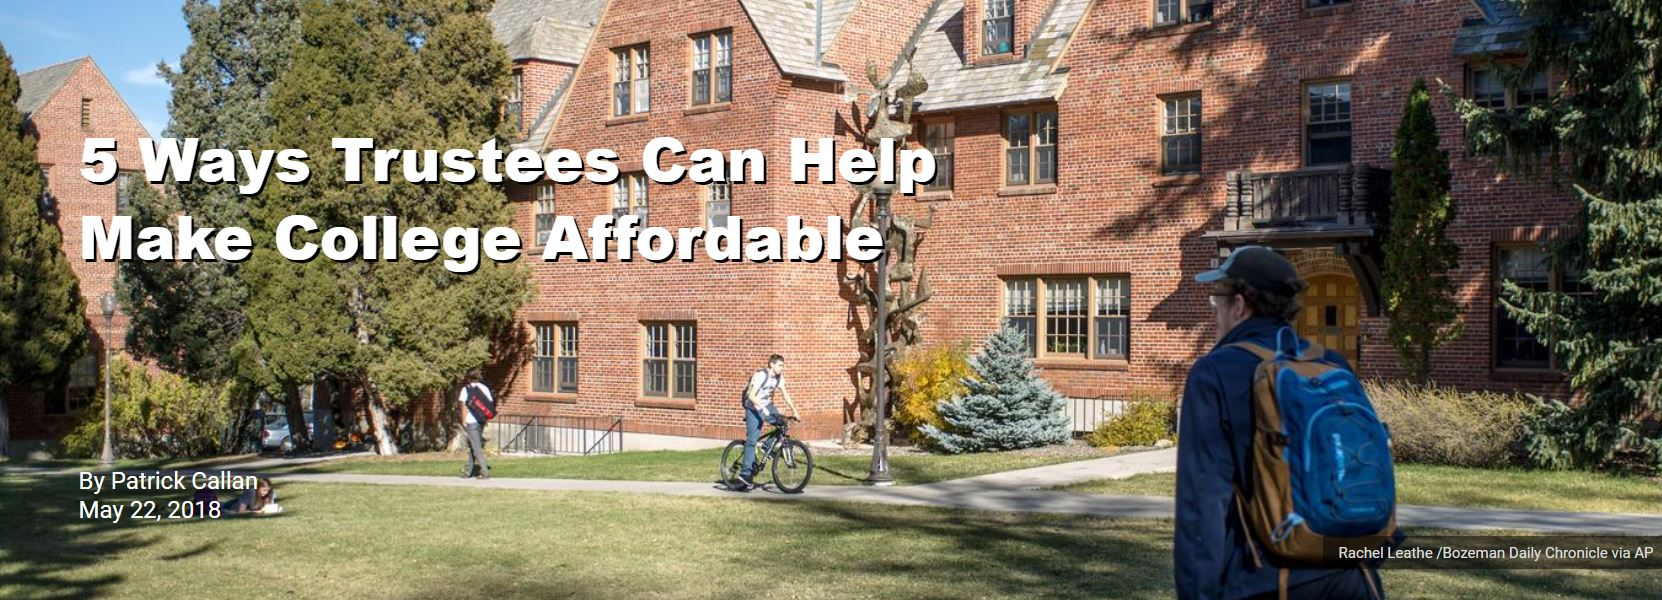 5 Ways Trustees Can Help Make College Affordable